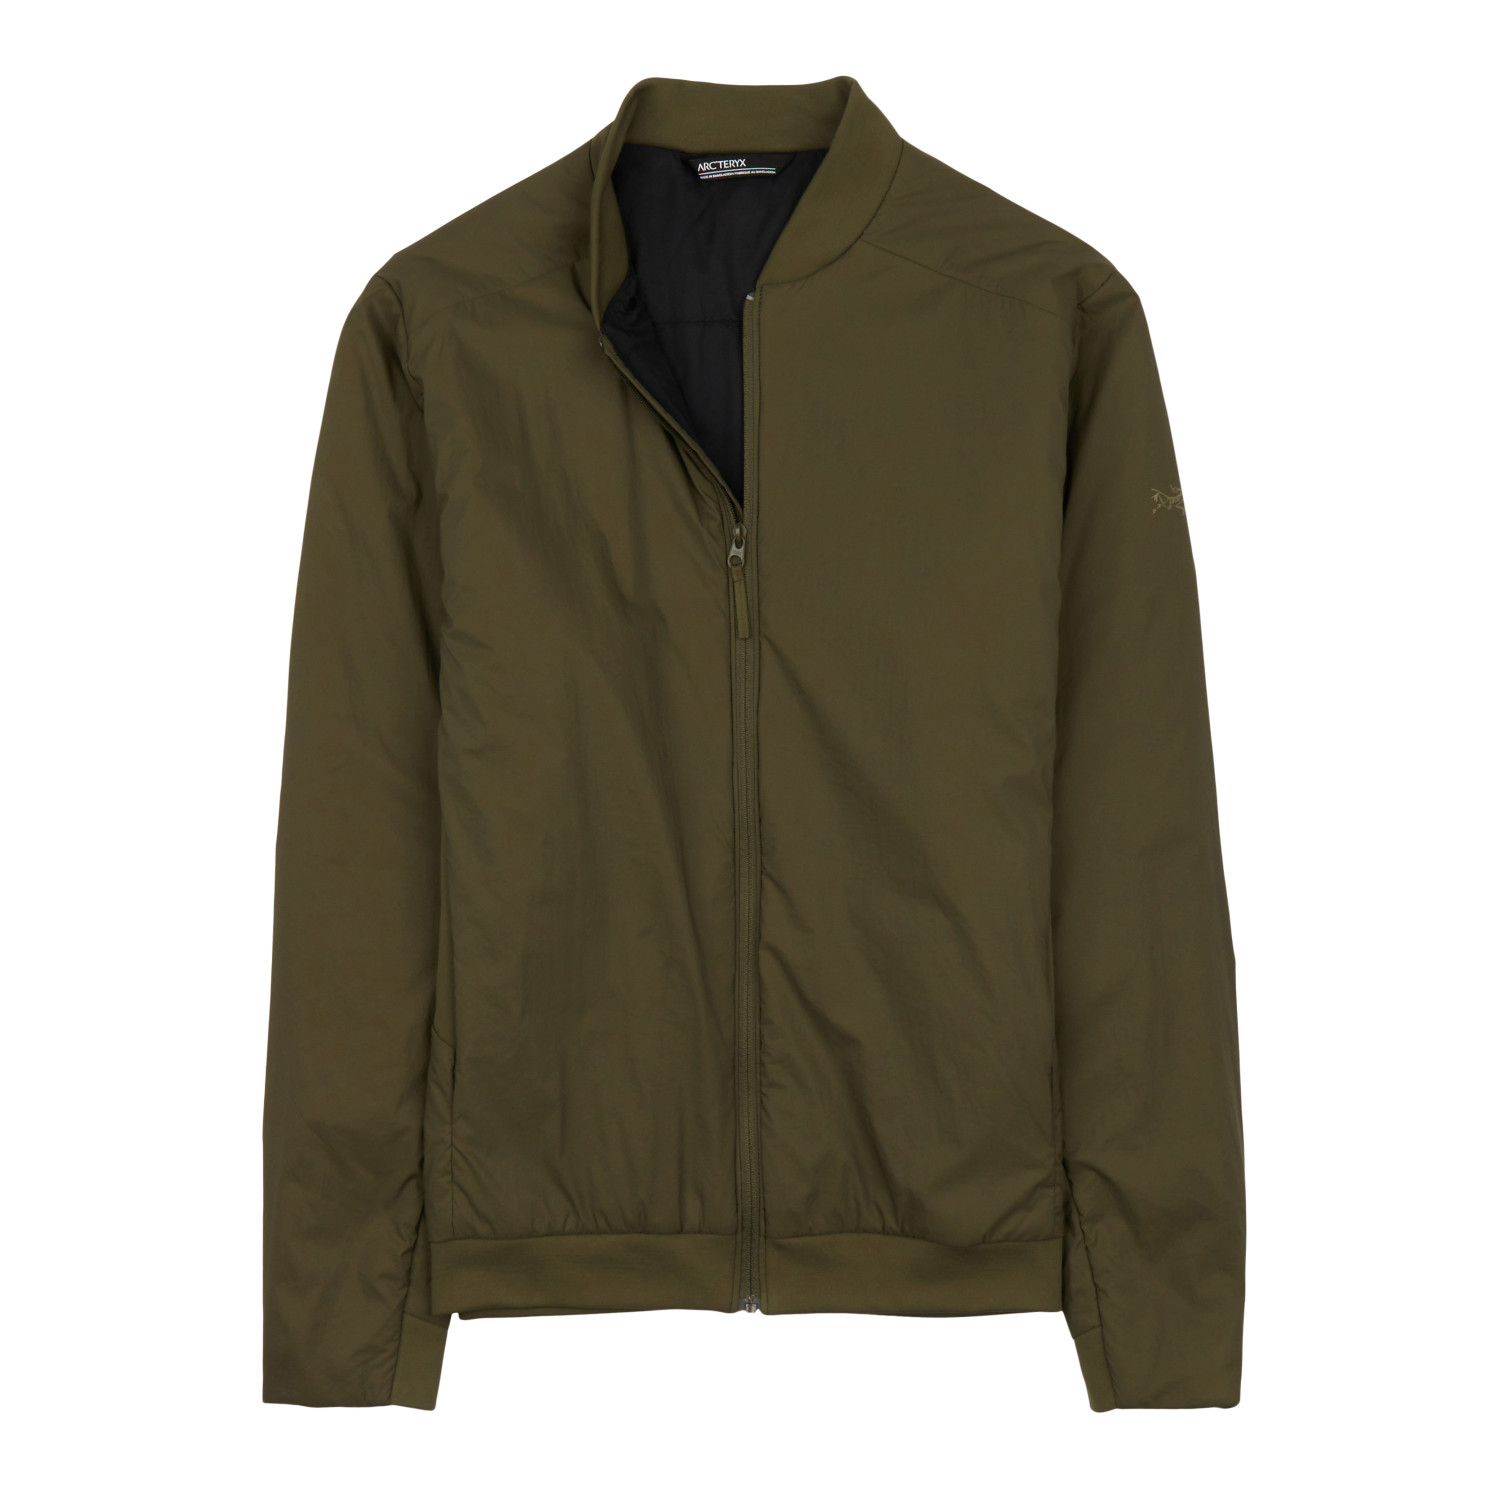 Main product image: Seton Jacket Men's